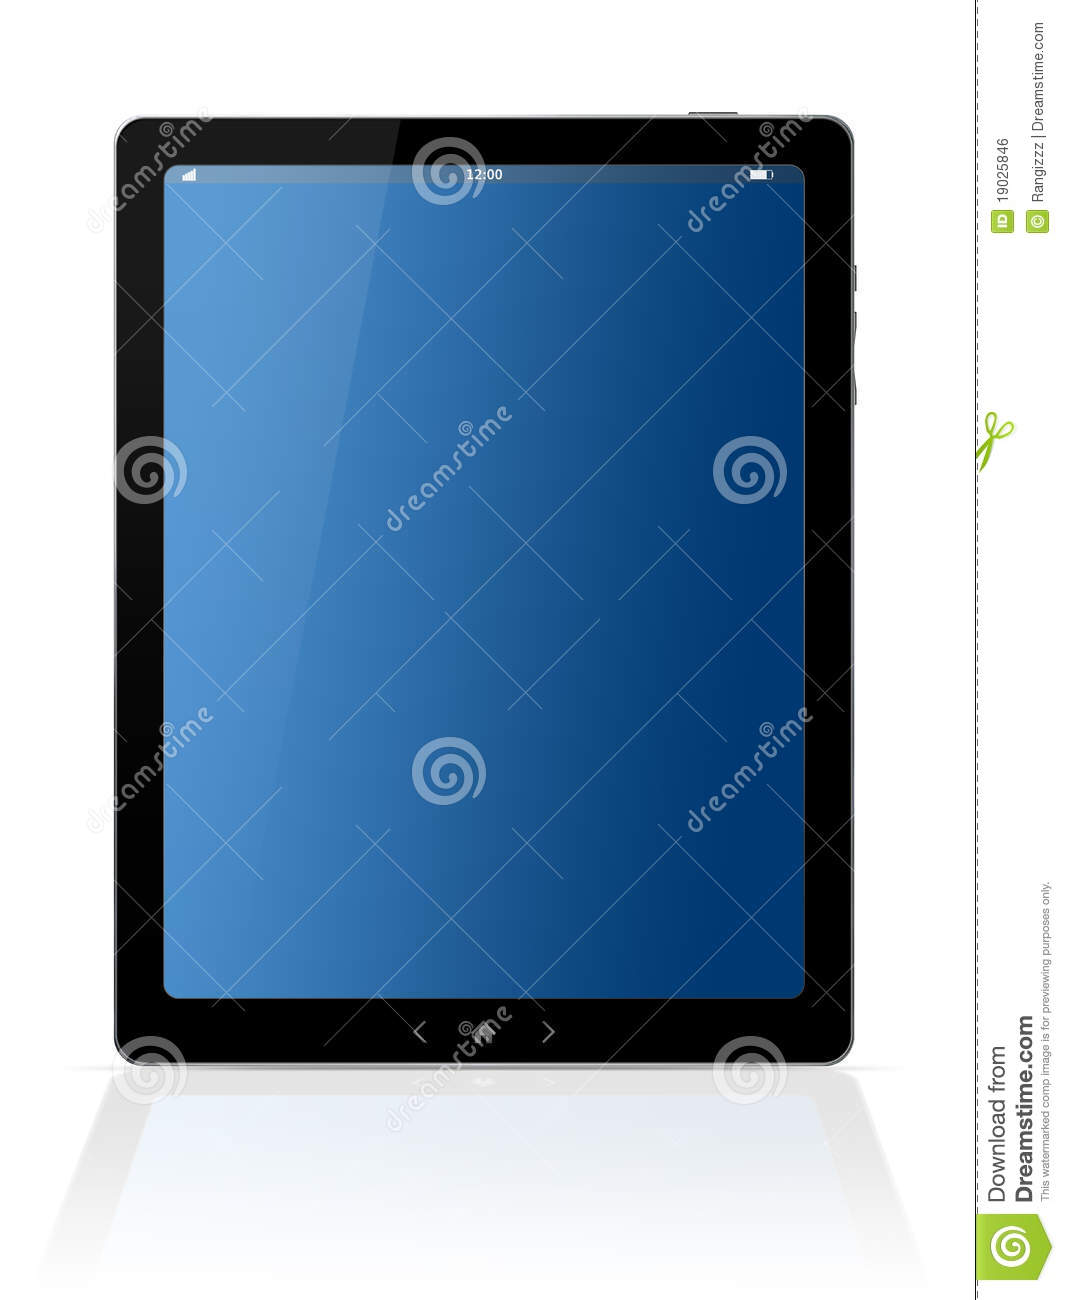 digital tablet vertical royalty free stock image image